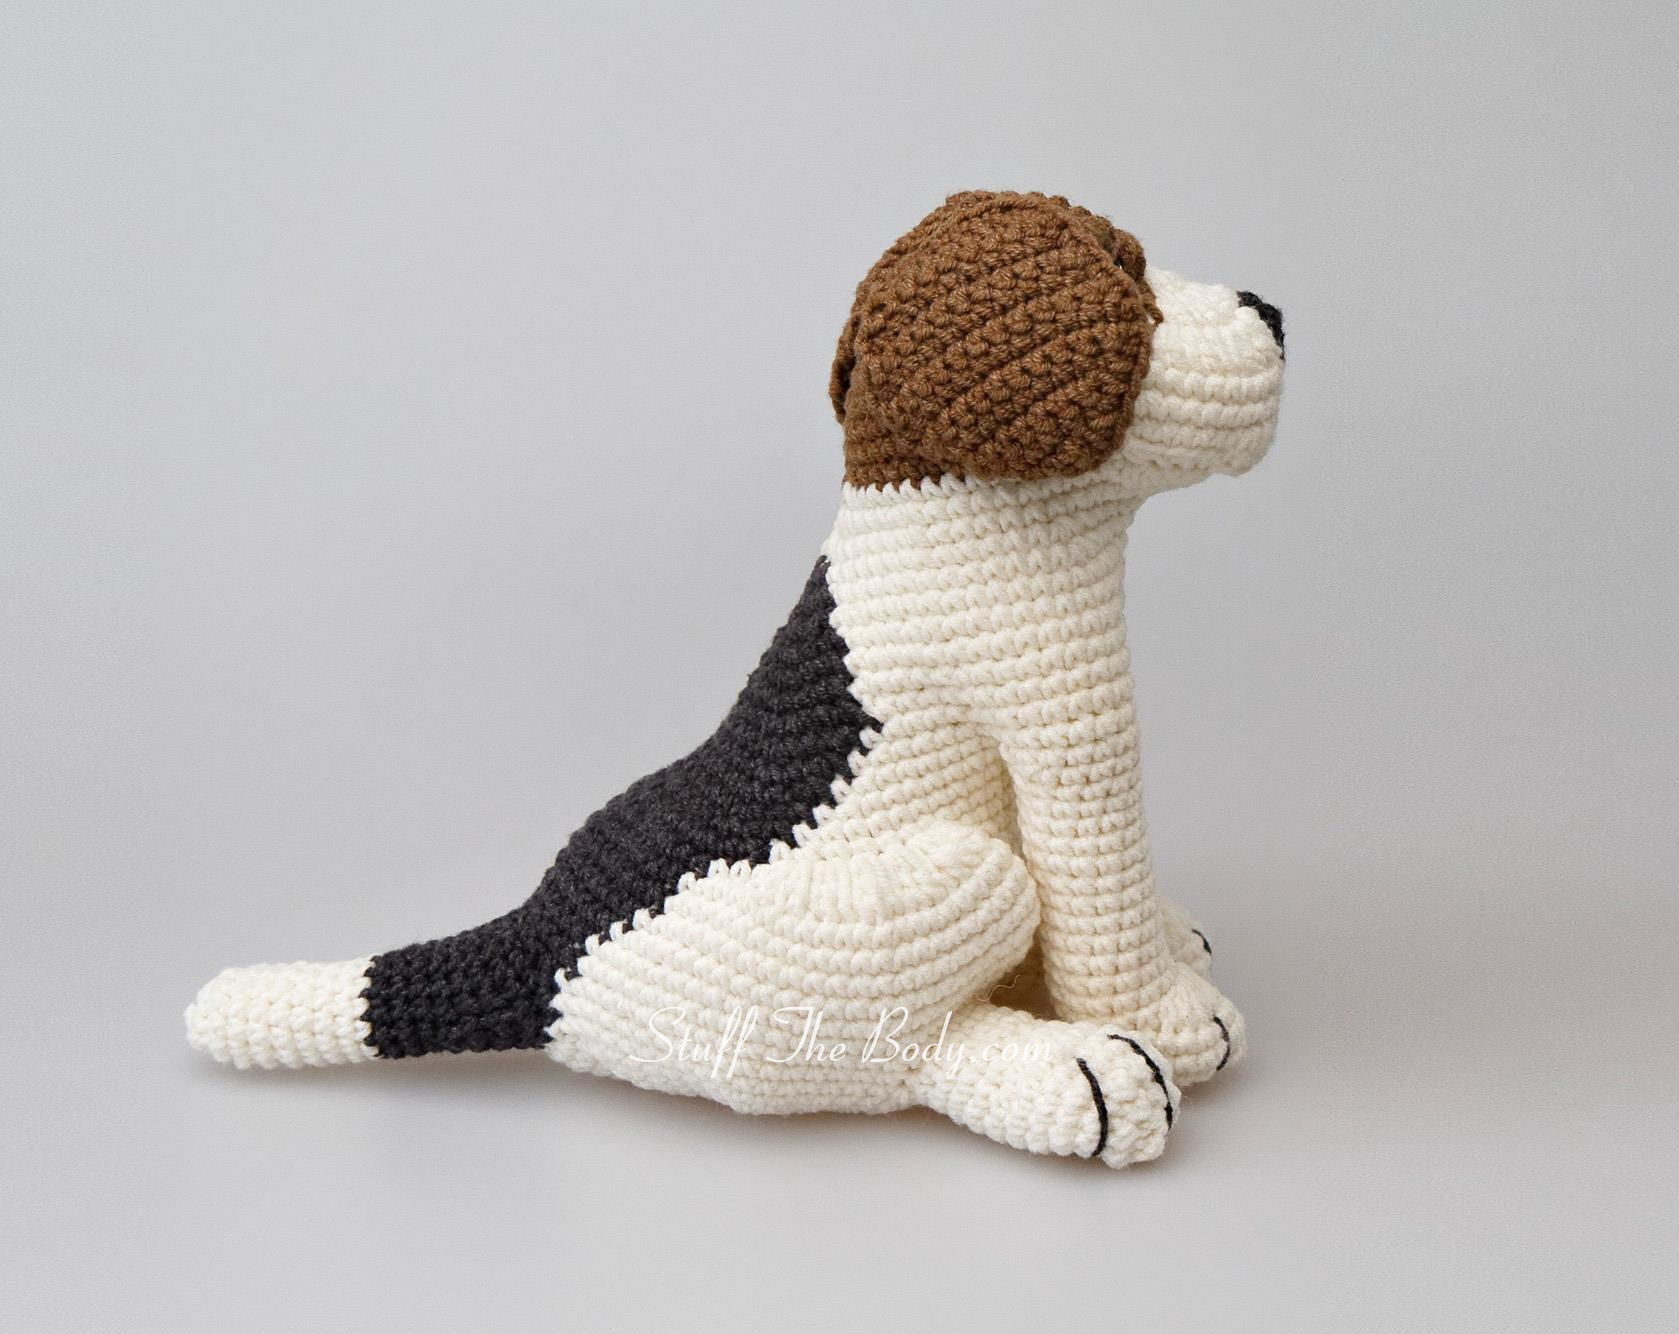 Azor The Beagle Dog Amigurumi Pattern Stuff The Body